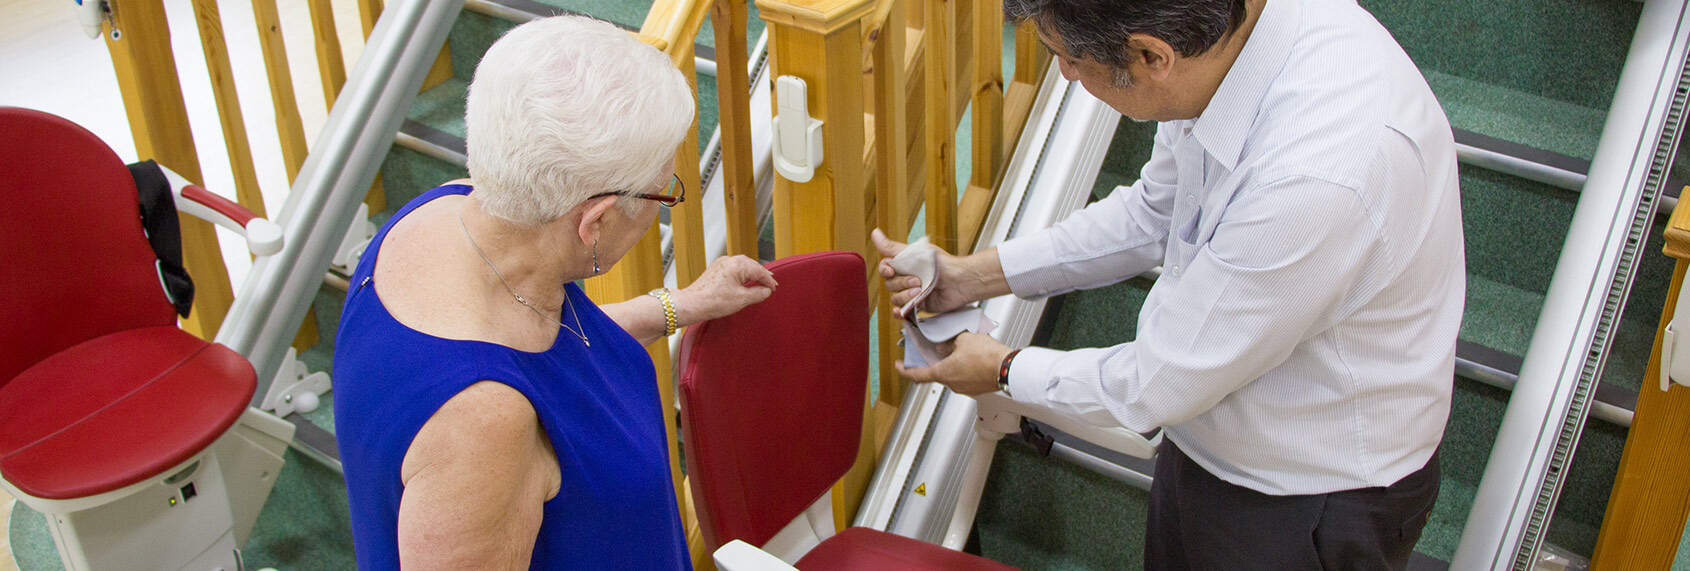 elderly lady being shown a stairlift by an advisor